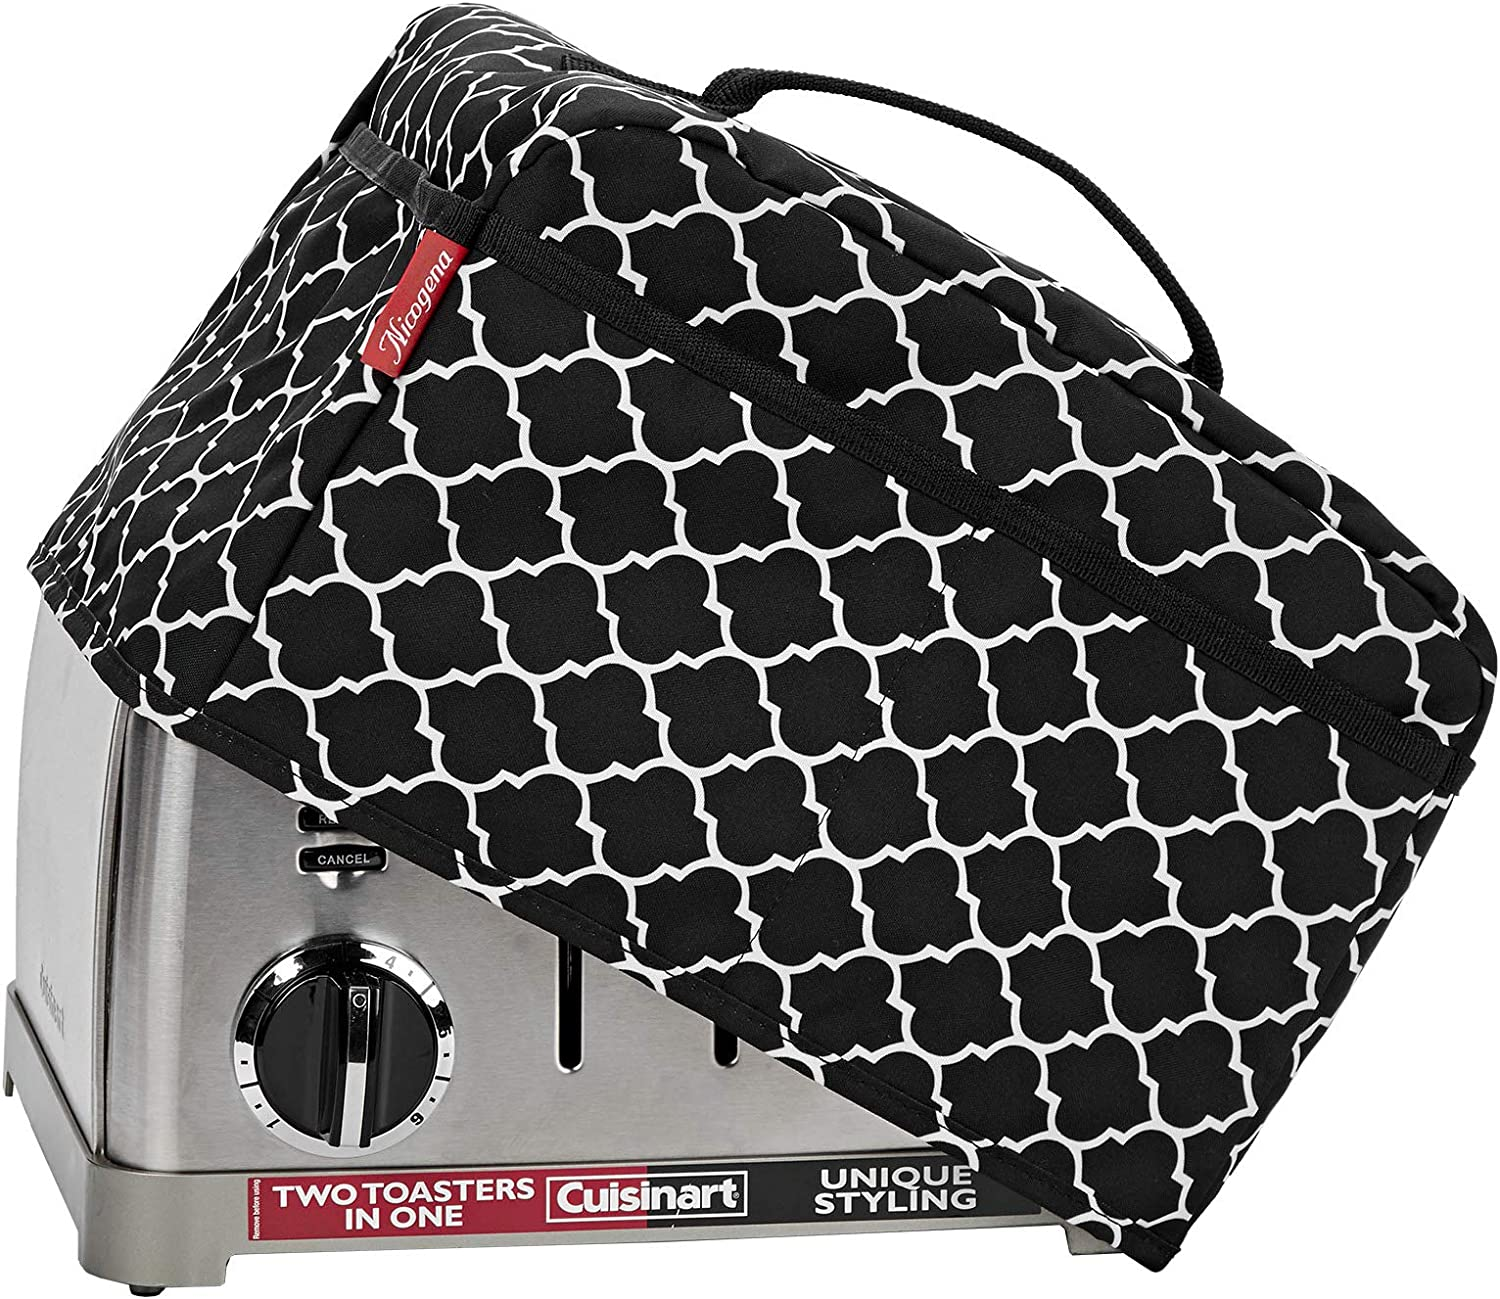 NICOGENA Toaster Dust Cover with Handle Compatible with Cuisinart 4 Slice Toaster, Dust and Fingerprint Protection,Pockets for Accessories, Lantern Black